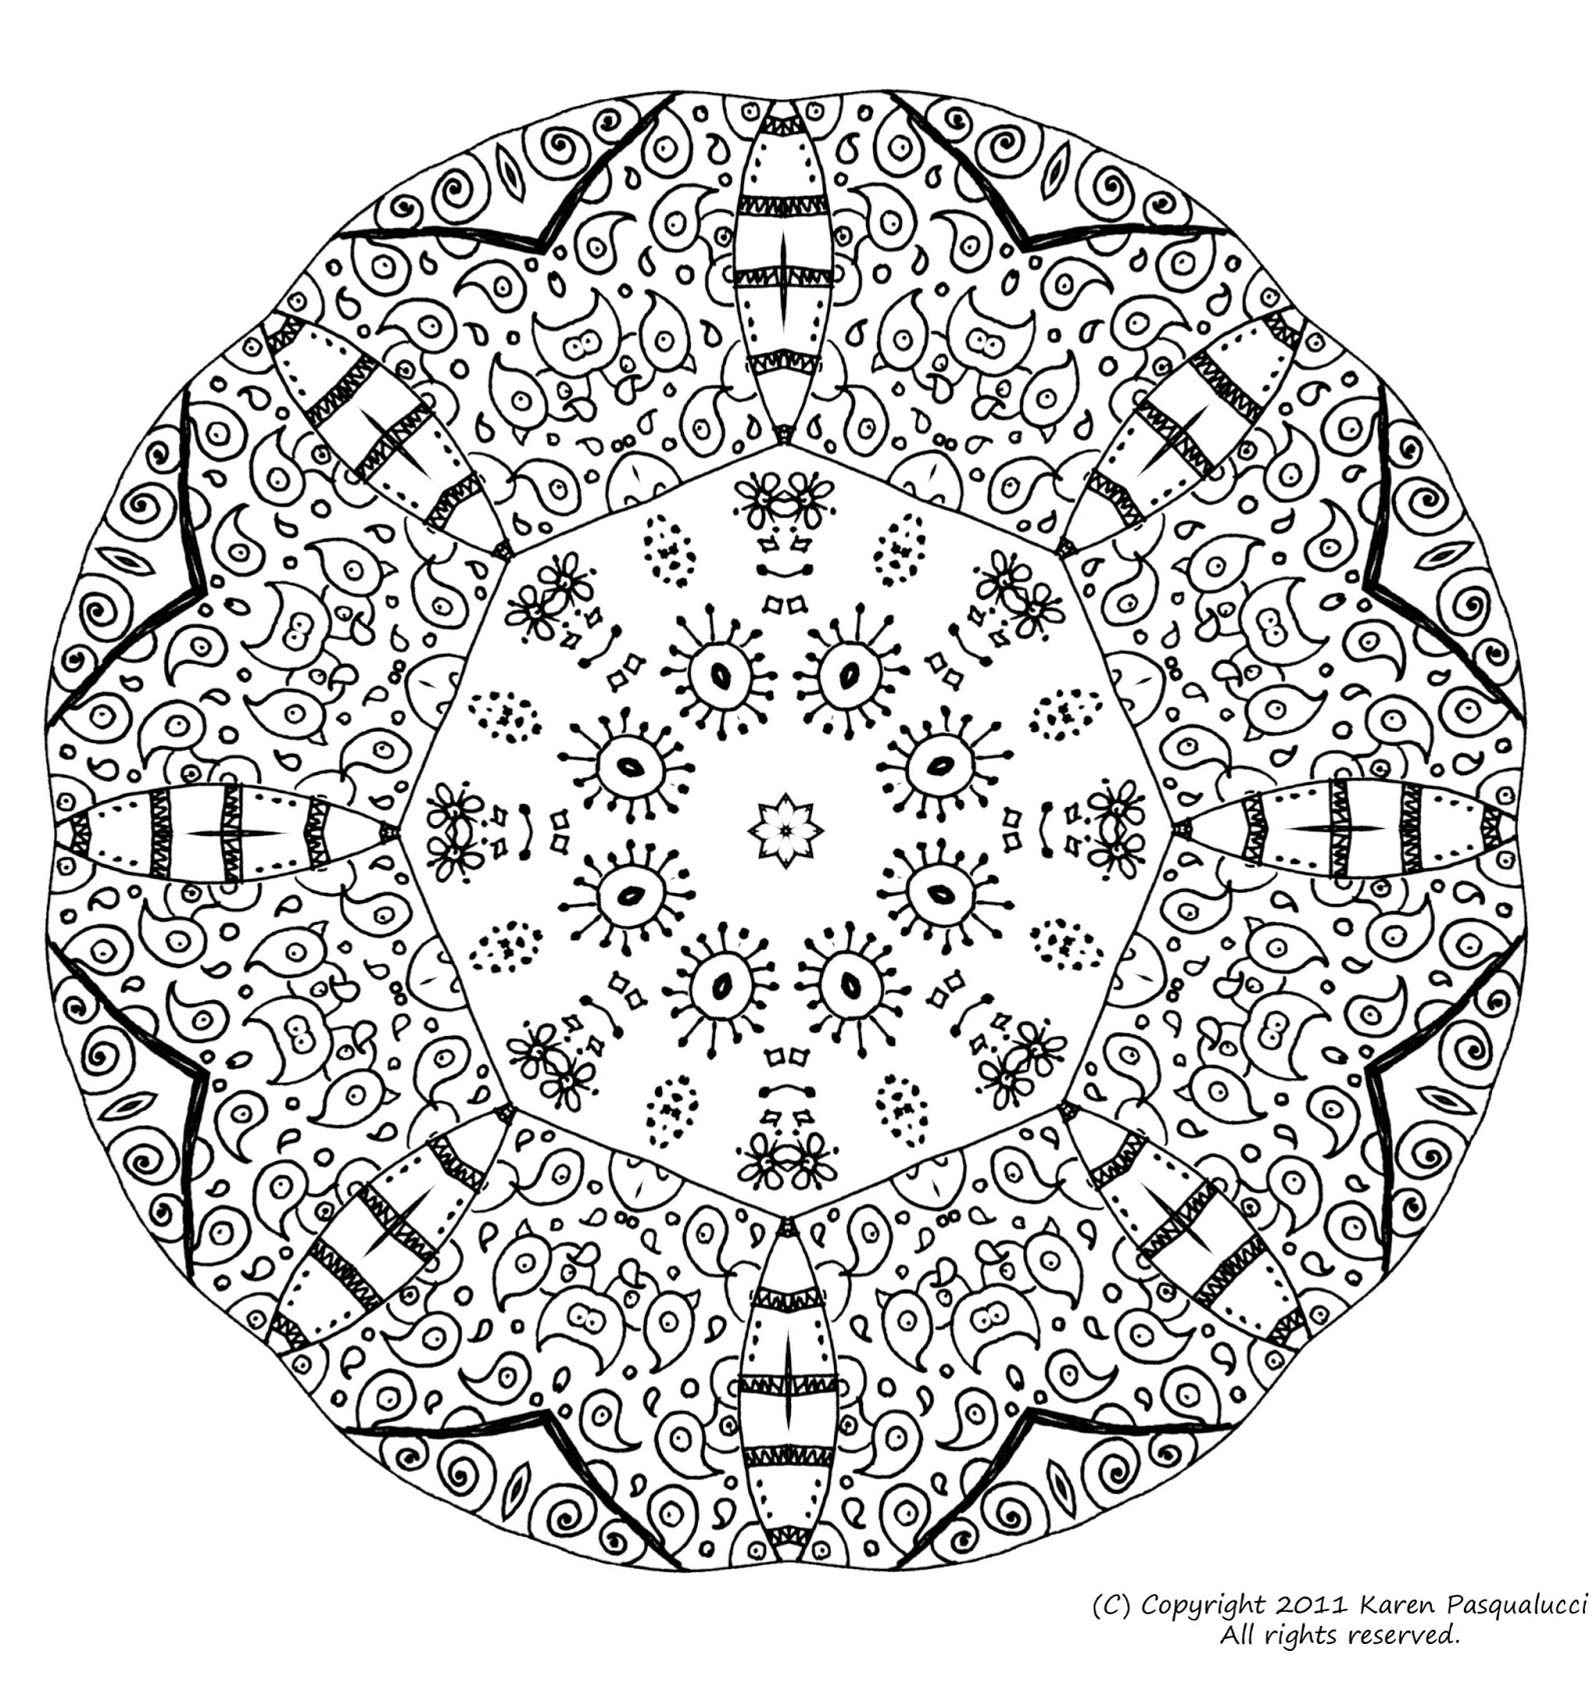 Mandala for adult fairly complex, with high level of detail